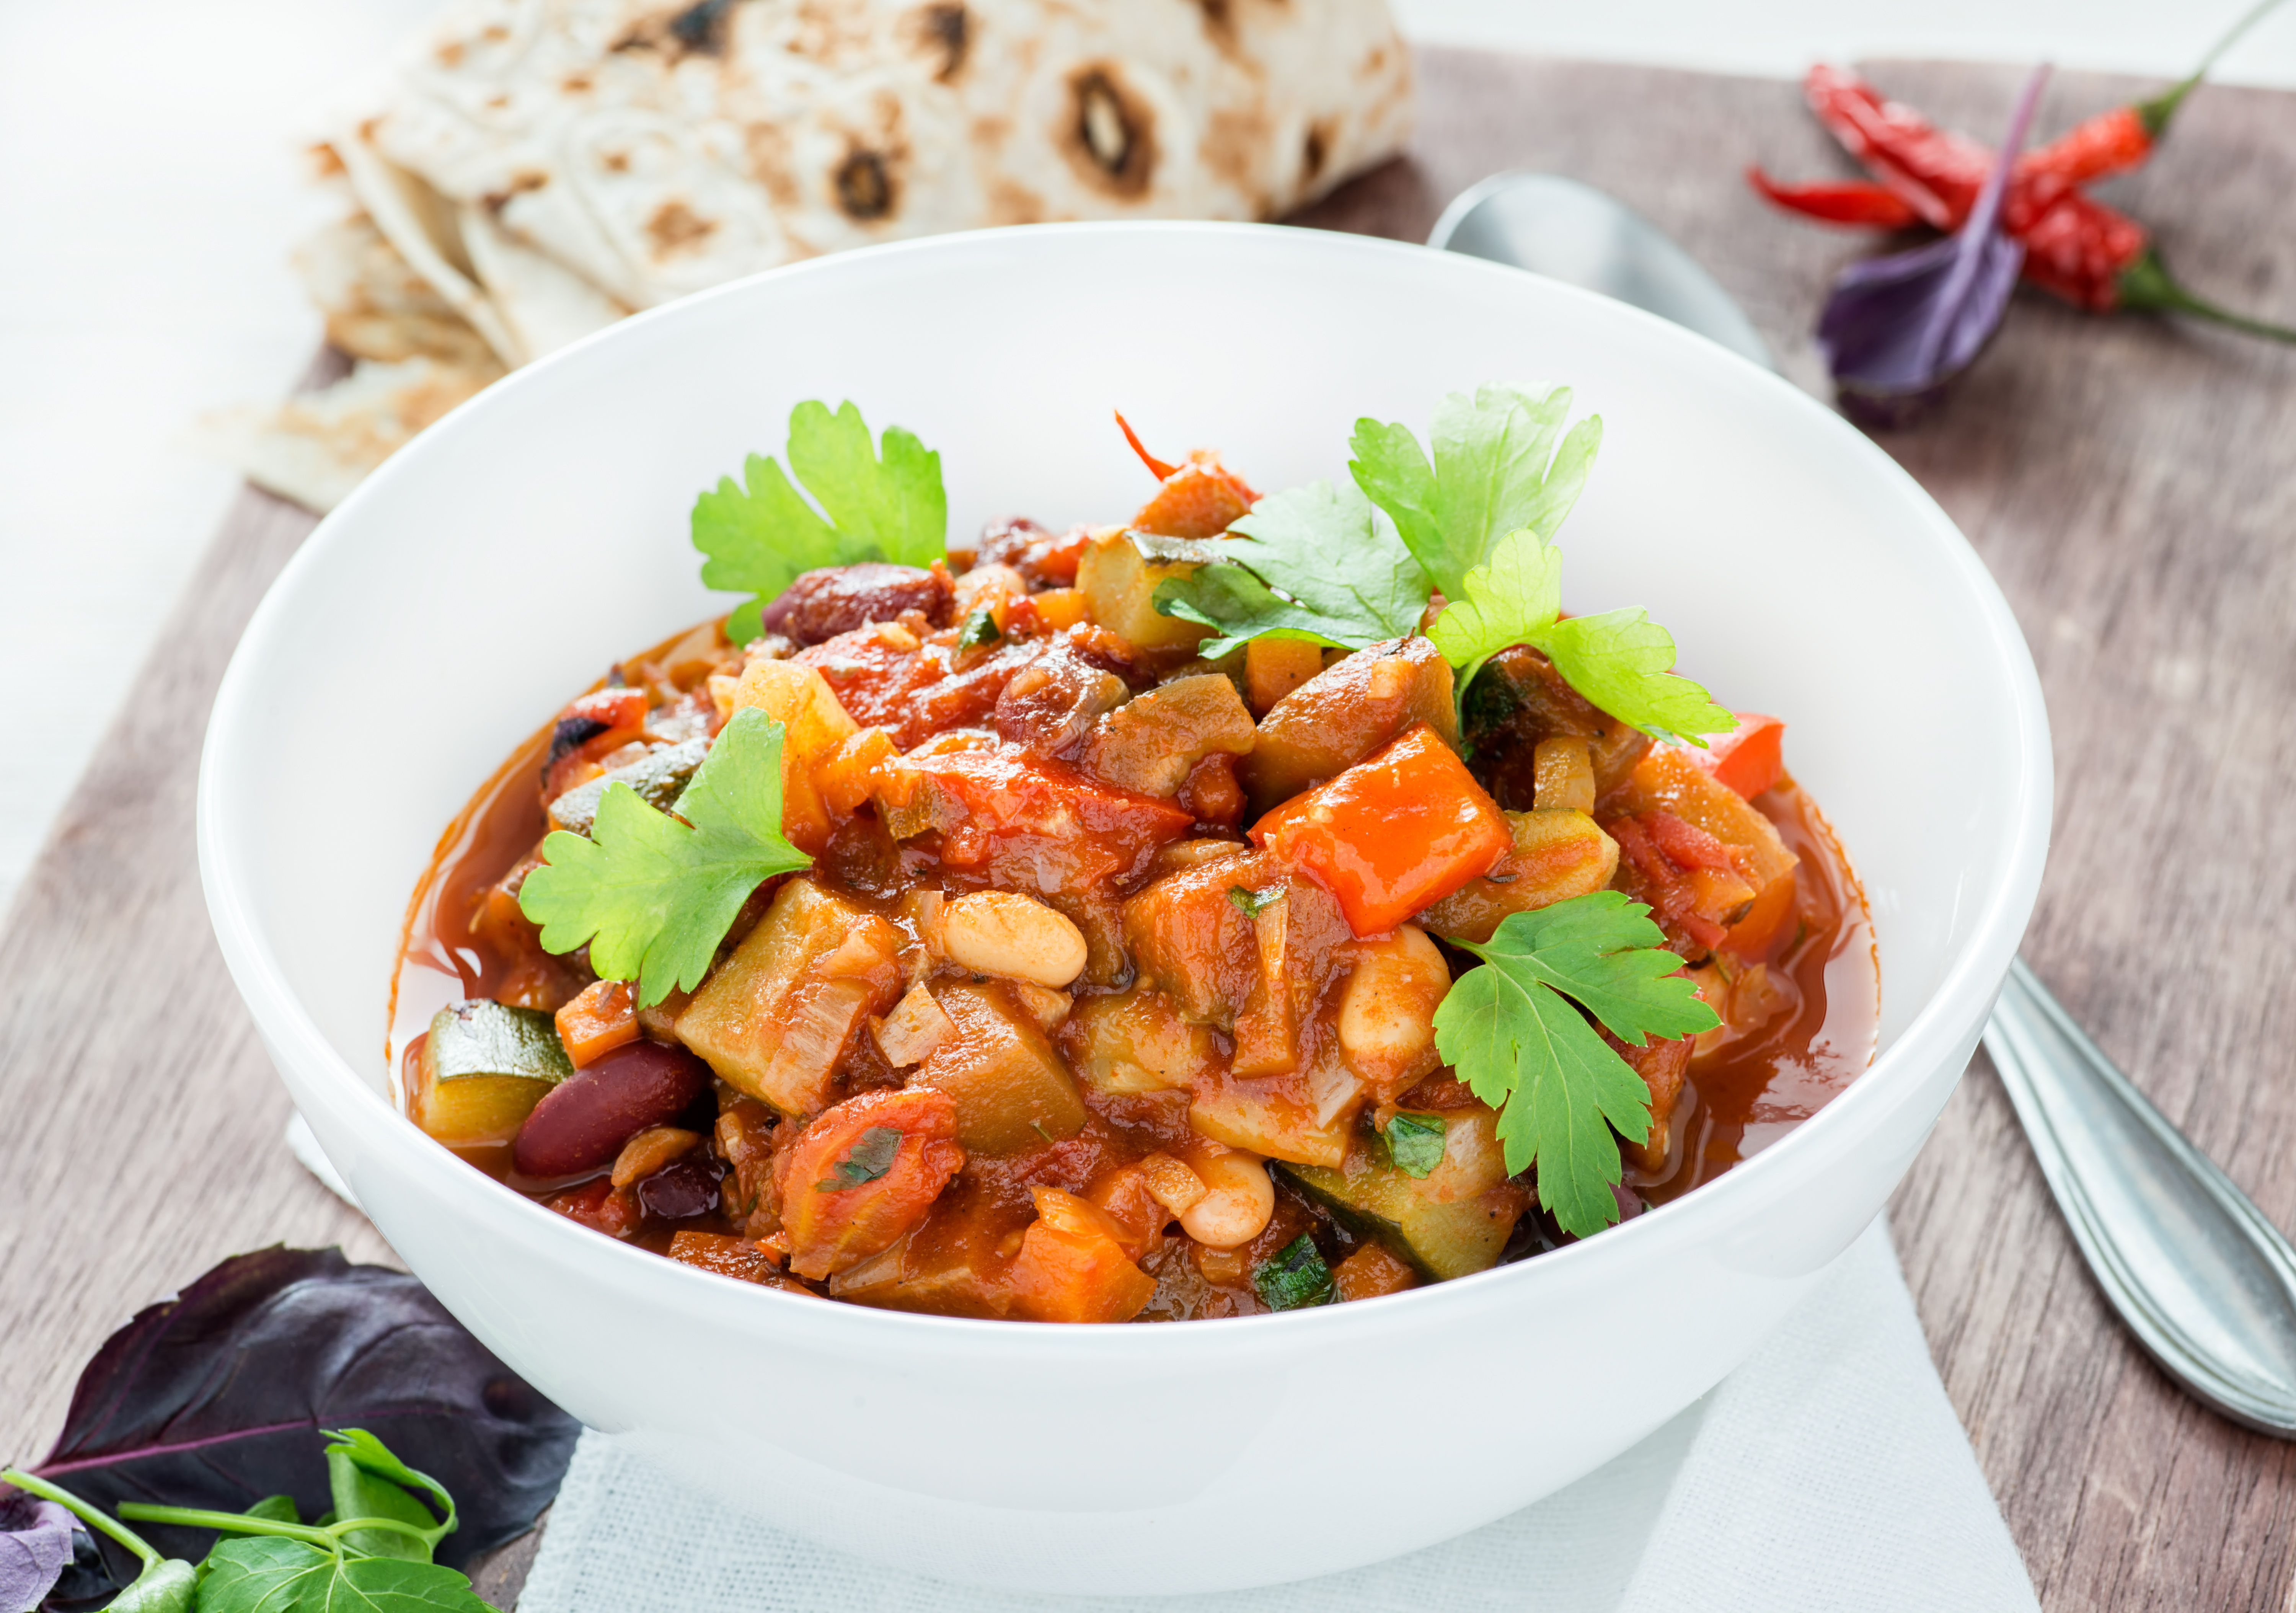 Vegetarian chilli with red and white beans in a bowl